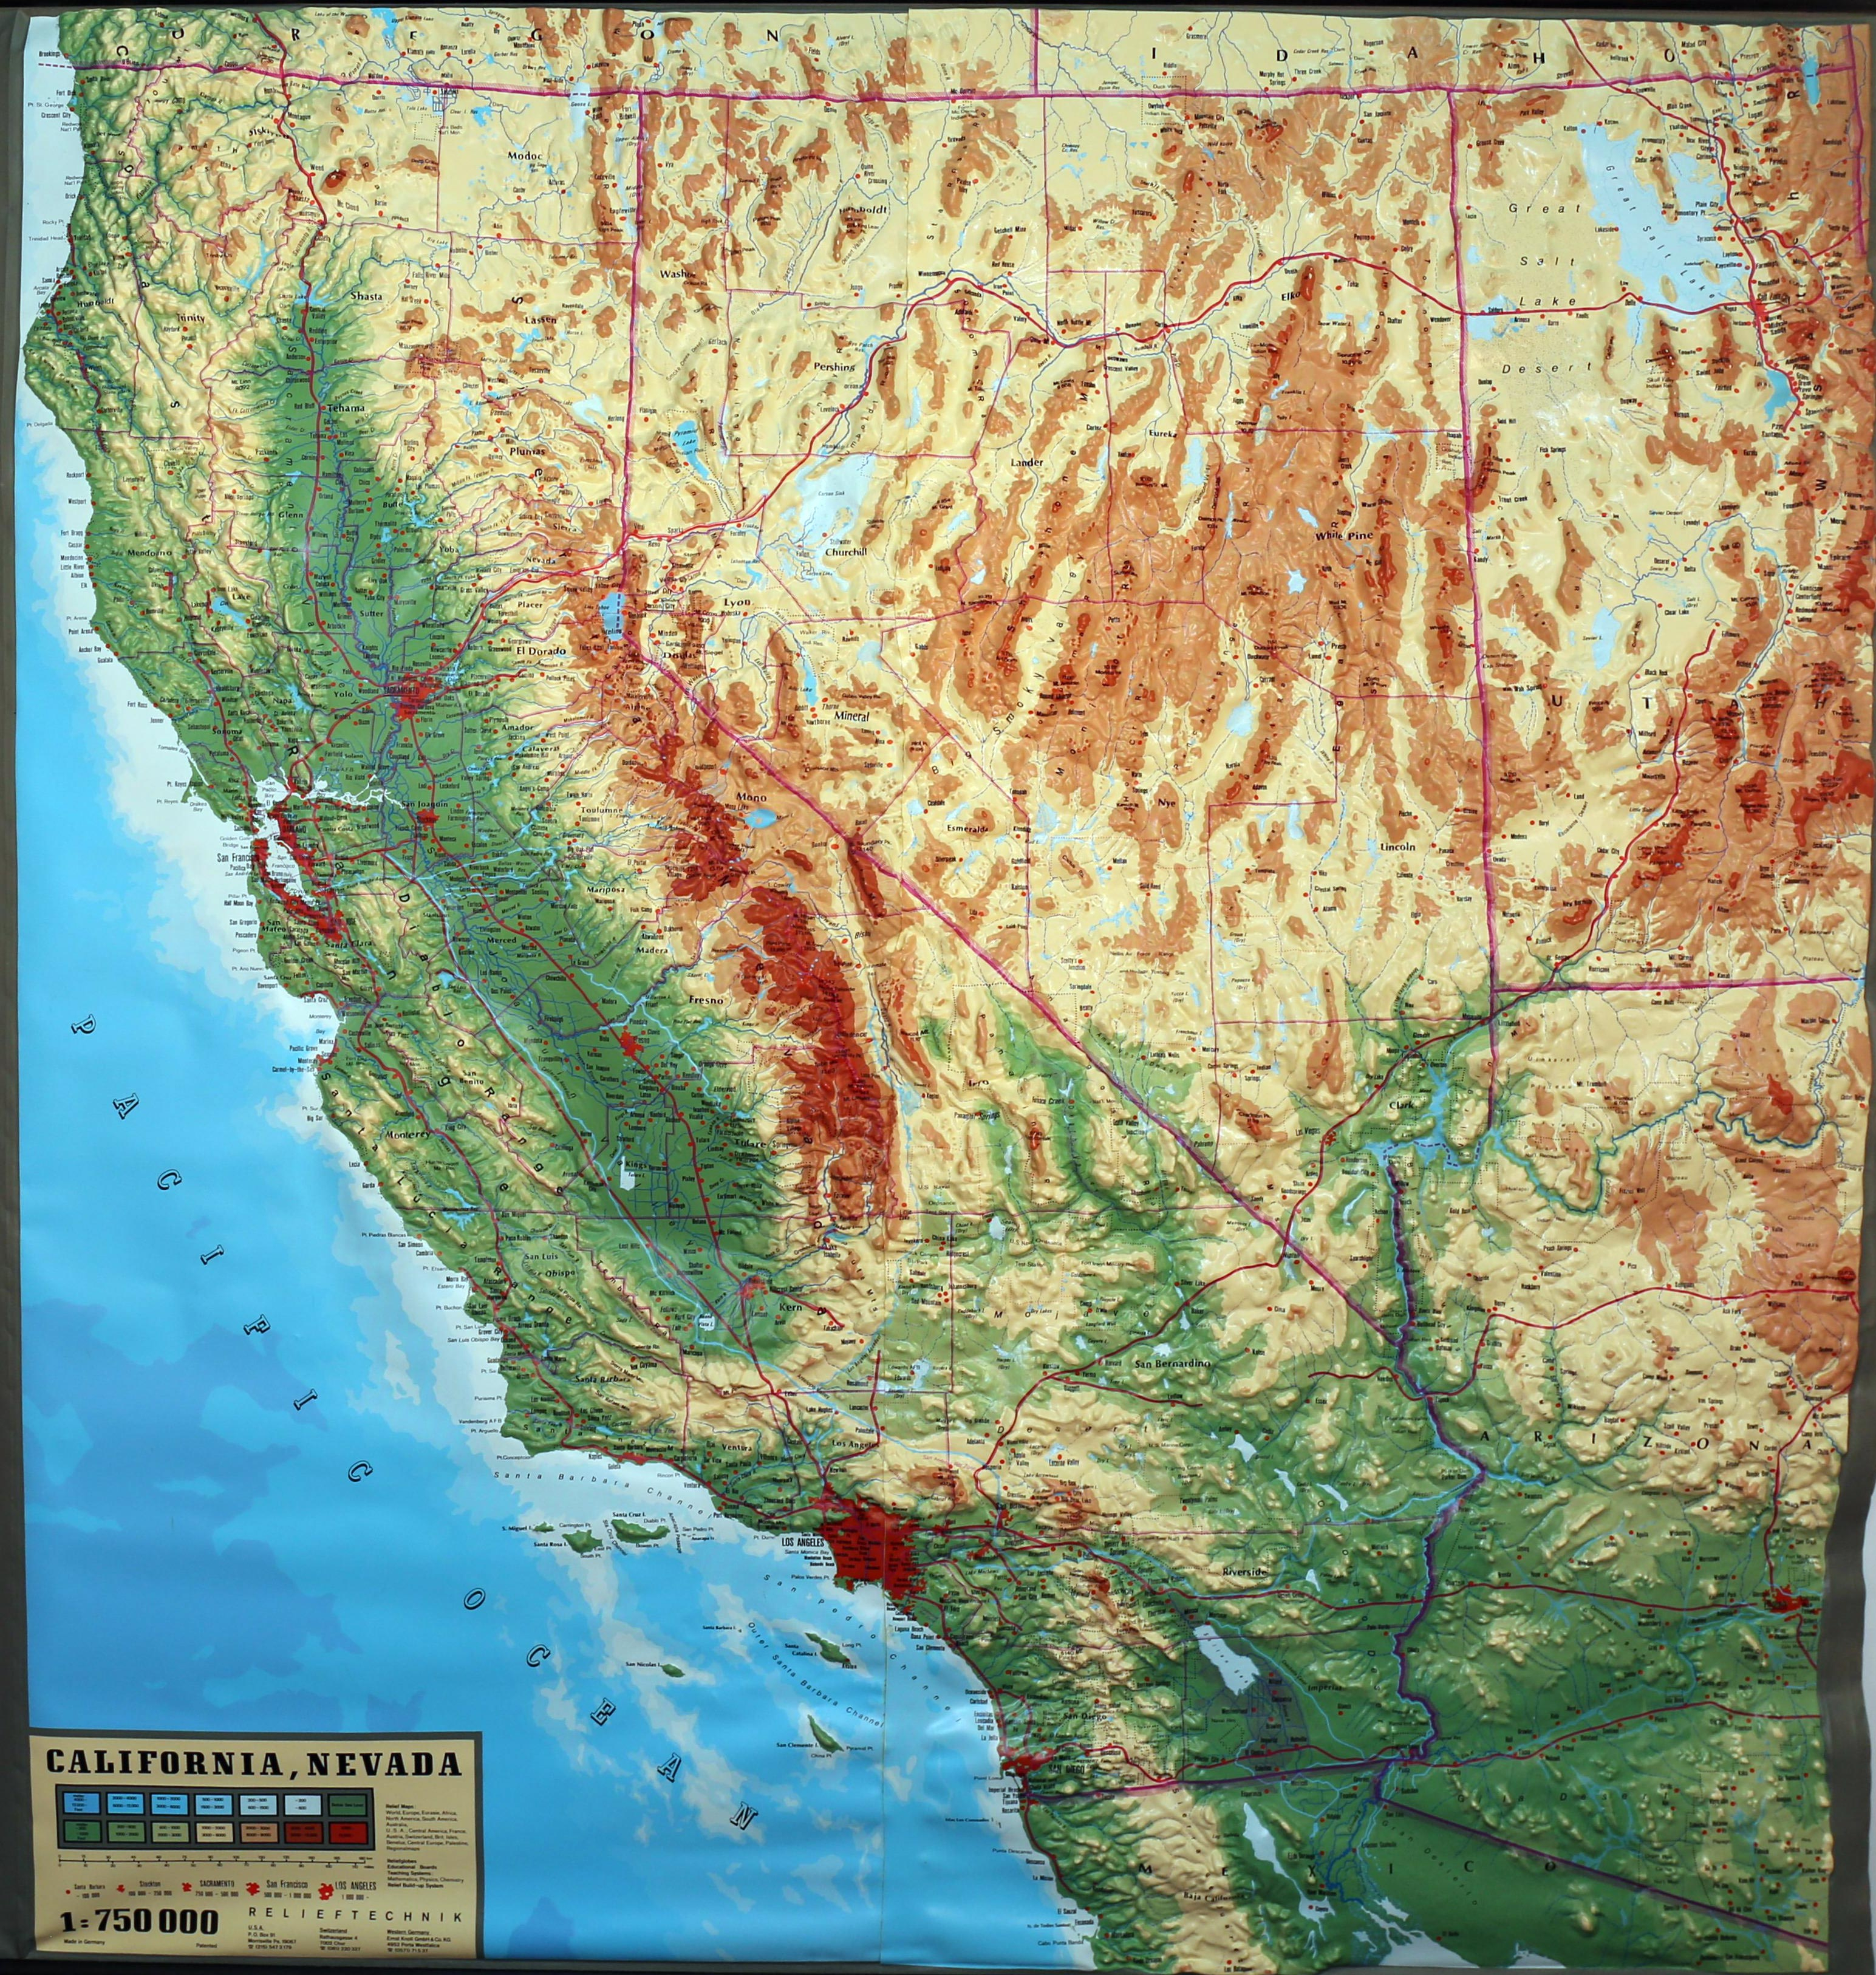 Large Extreme Raised Relief Map Of California And Nevada - California Raised Relief Map